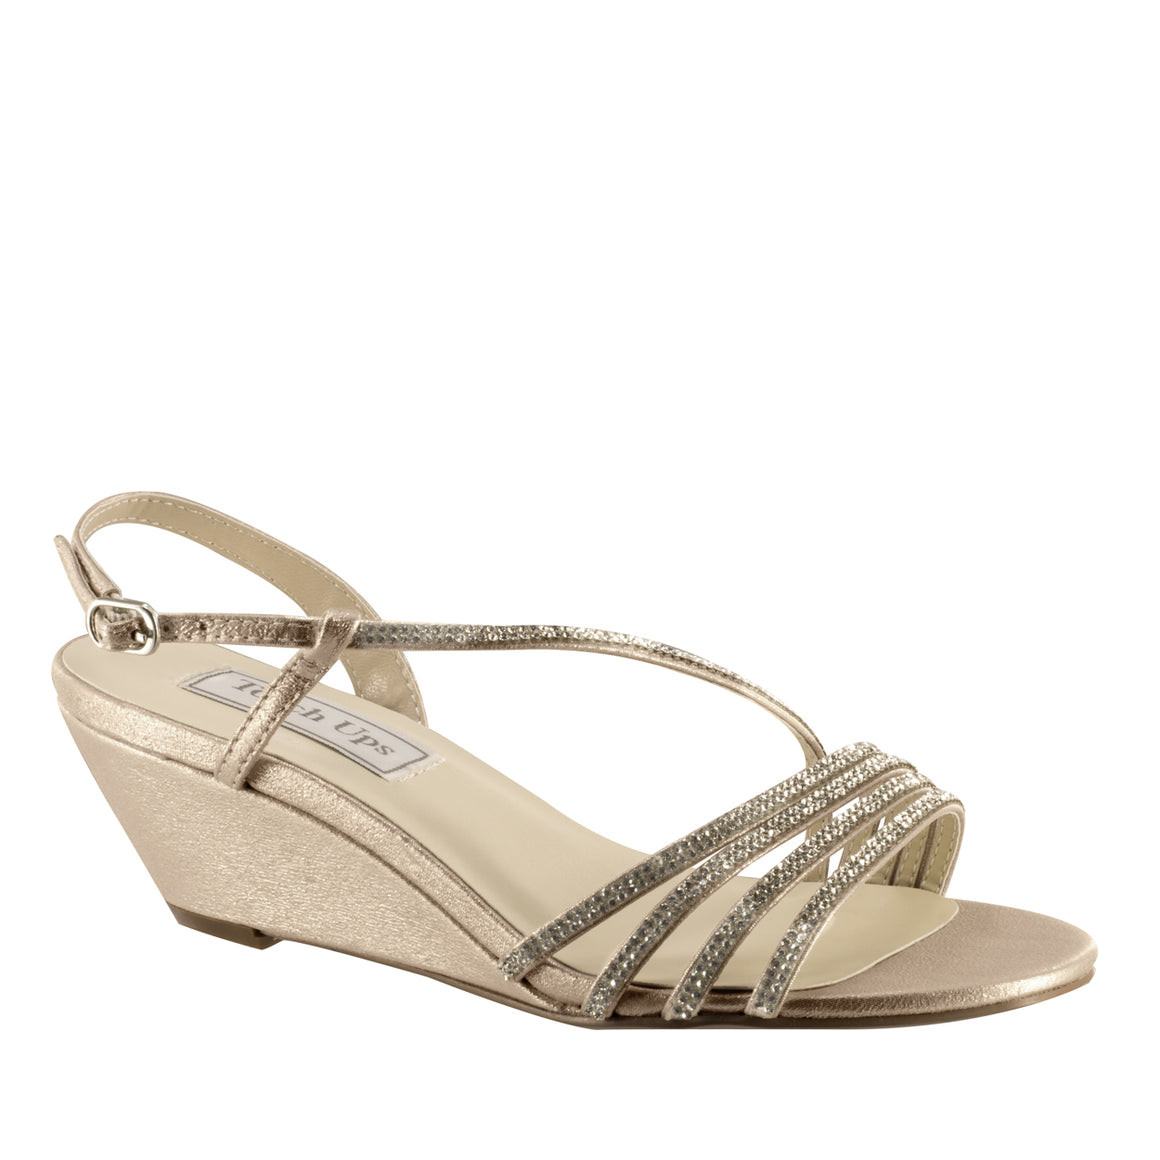 Celeste Wedge Sandal with Asymmetrical Straps in Nude Shimmer